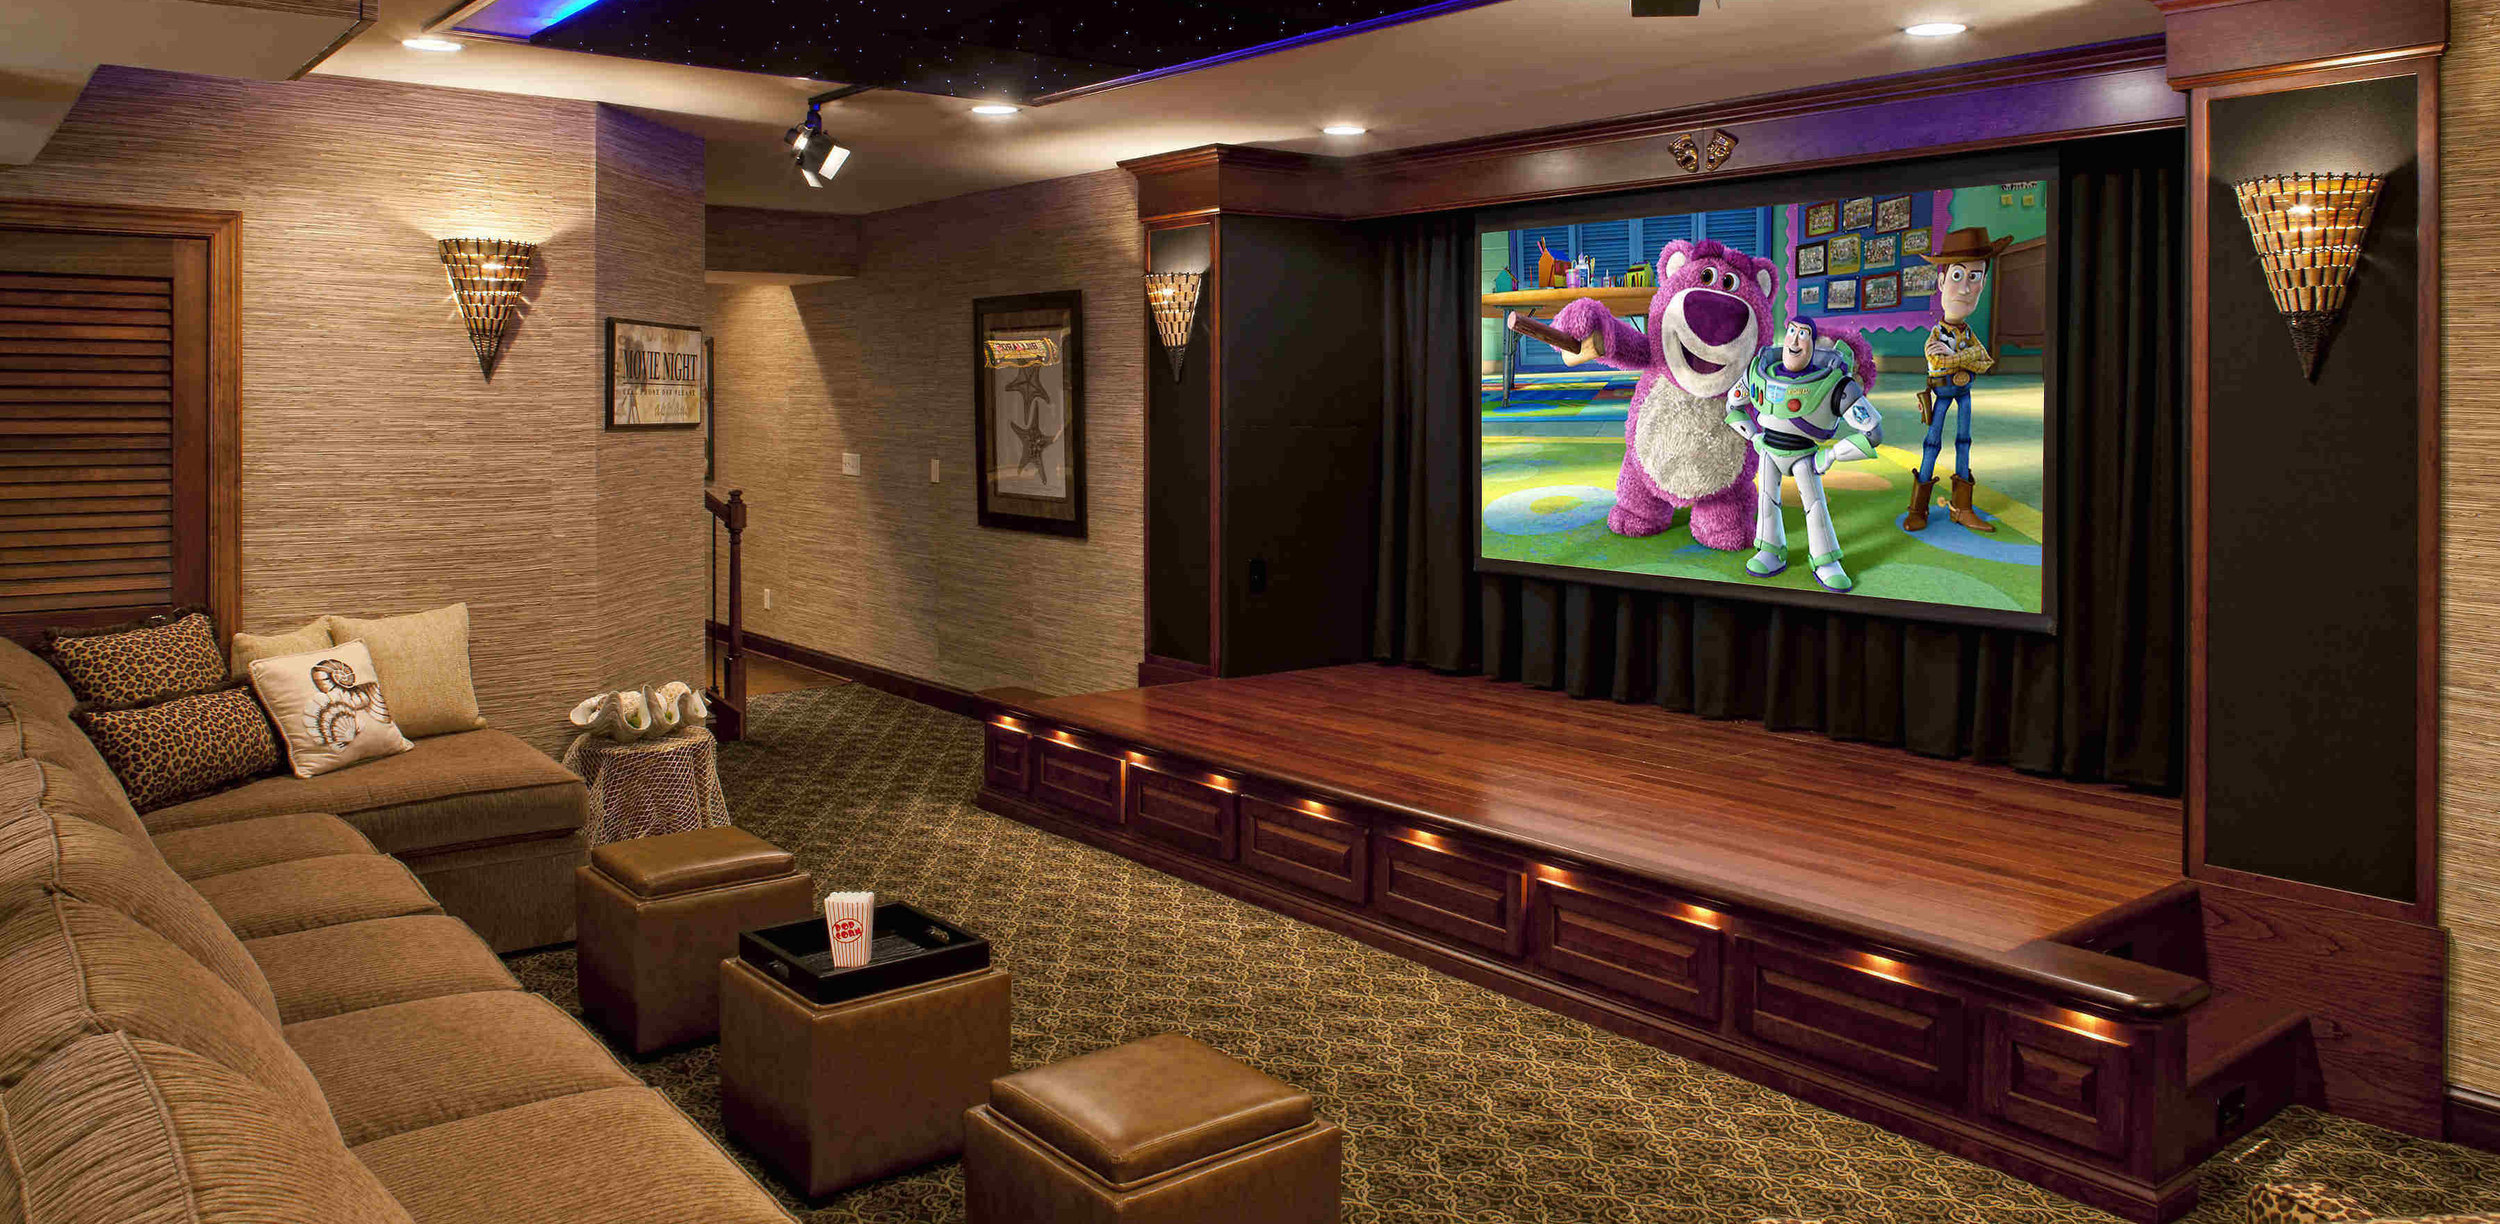 South County Sound and Video offers residential home theater installation as well as commercial theater and security installation.